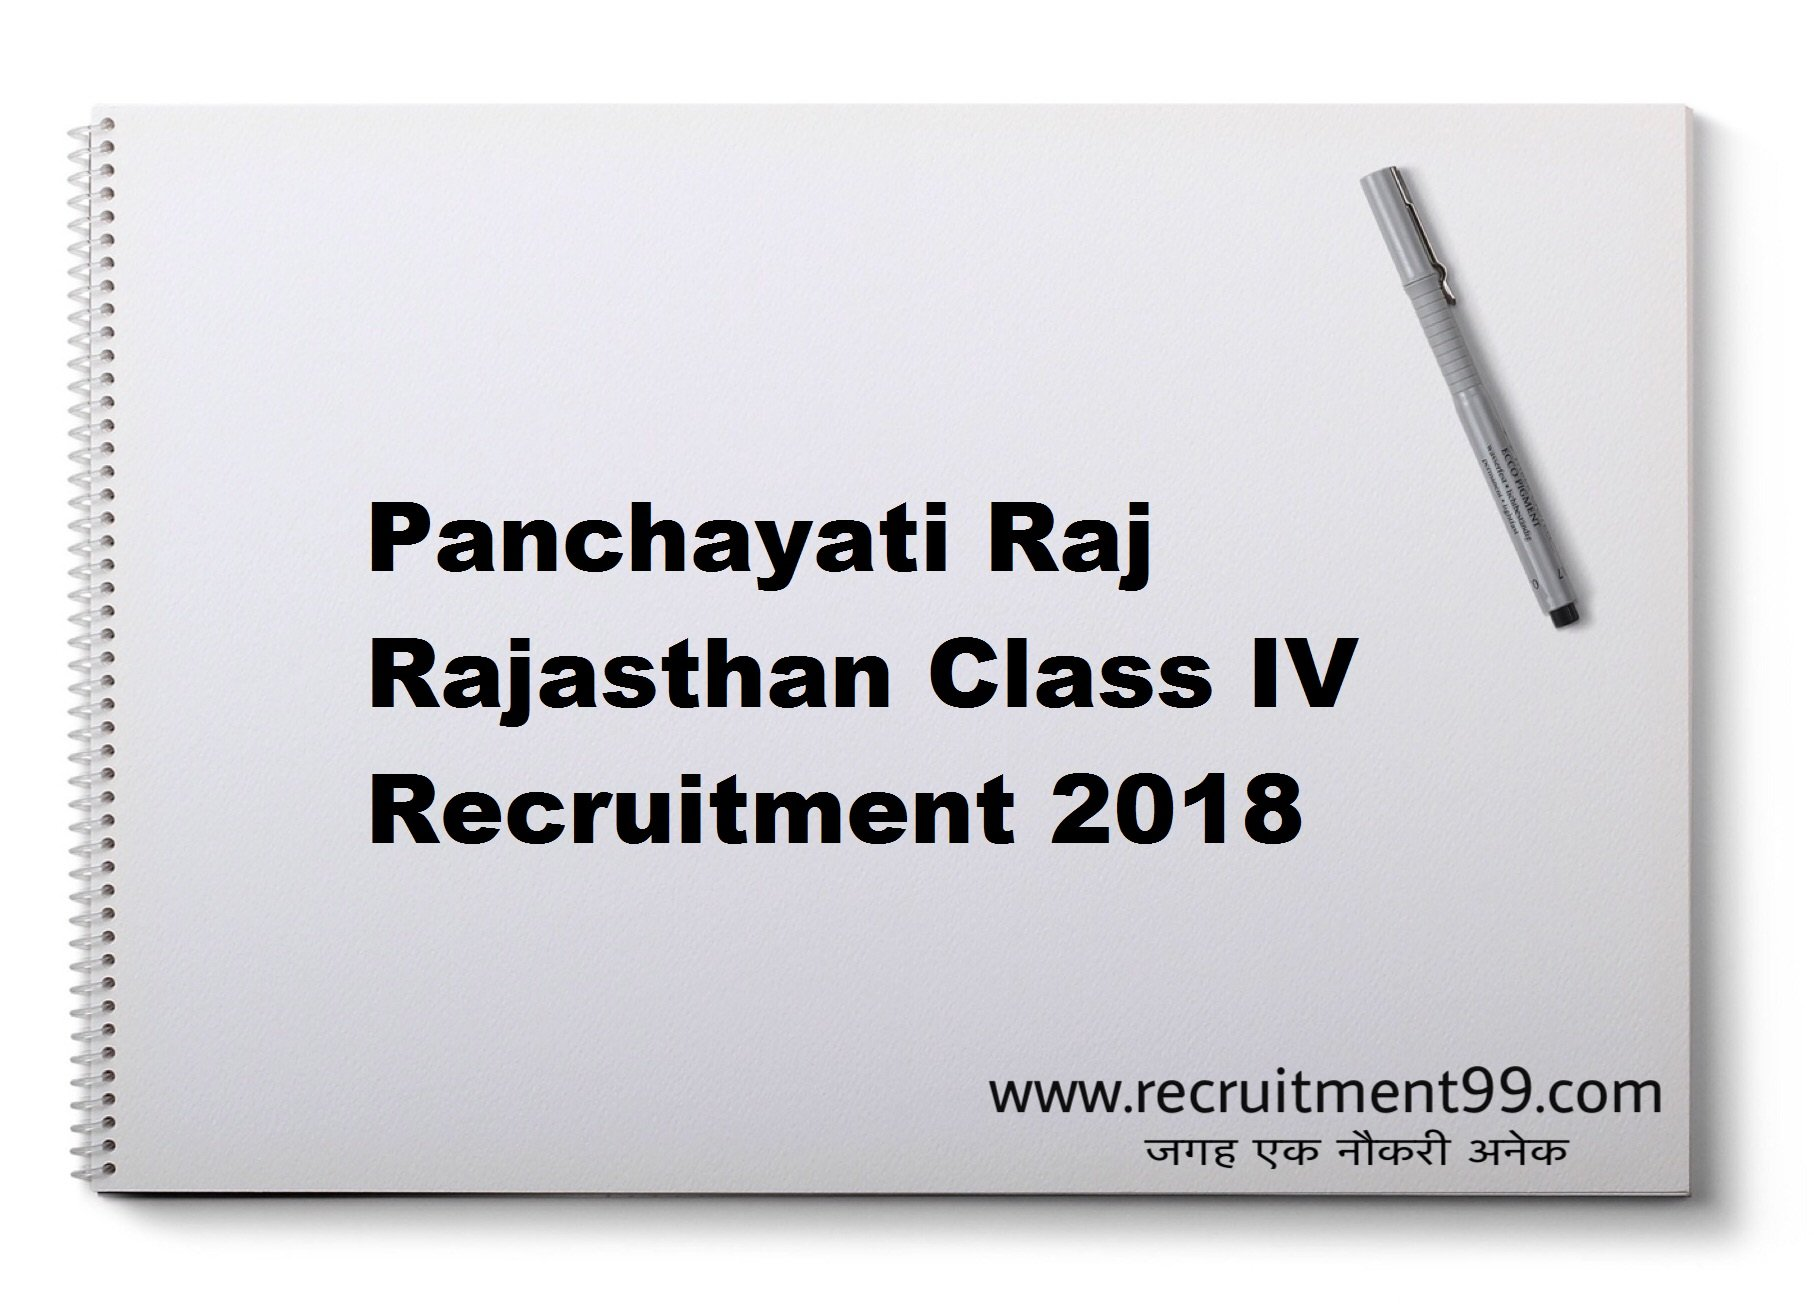 Panchayati Raj Rajasthan Class IV Recruitment Admit Card Result 2018